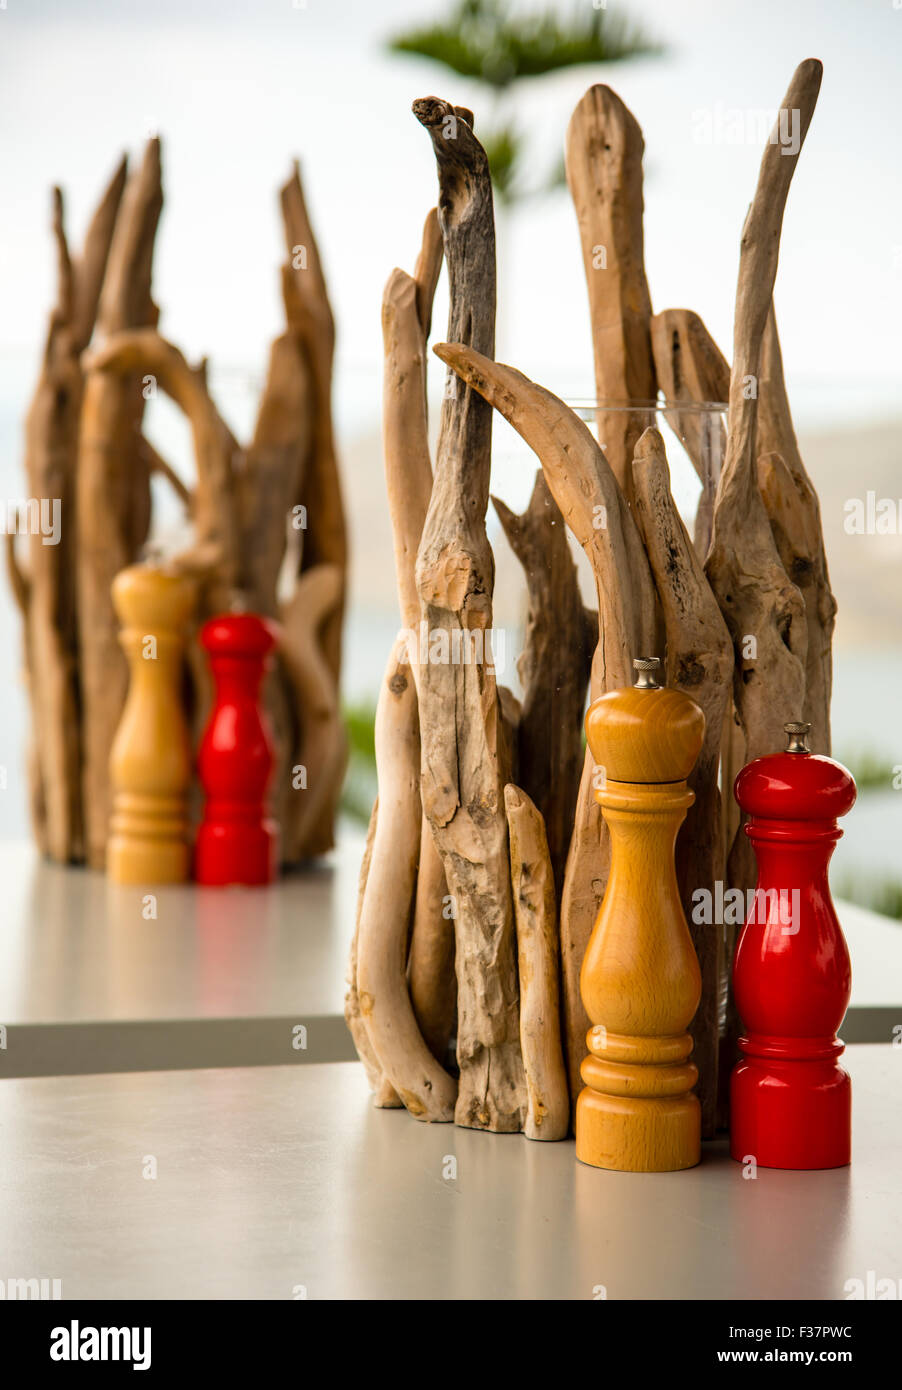 wooden salt and pepper mills on a dinner table - Stock Image